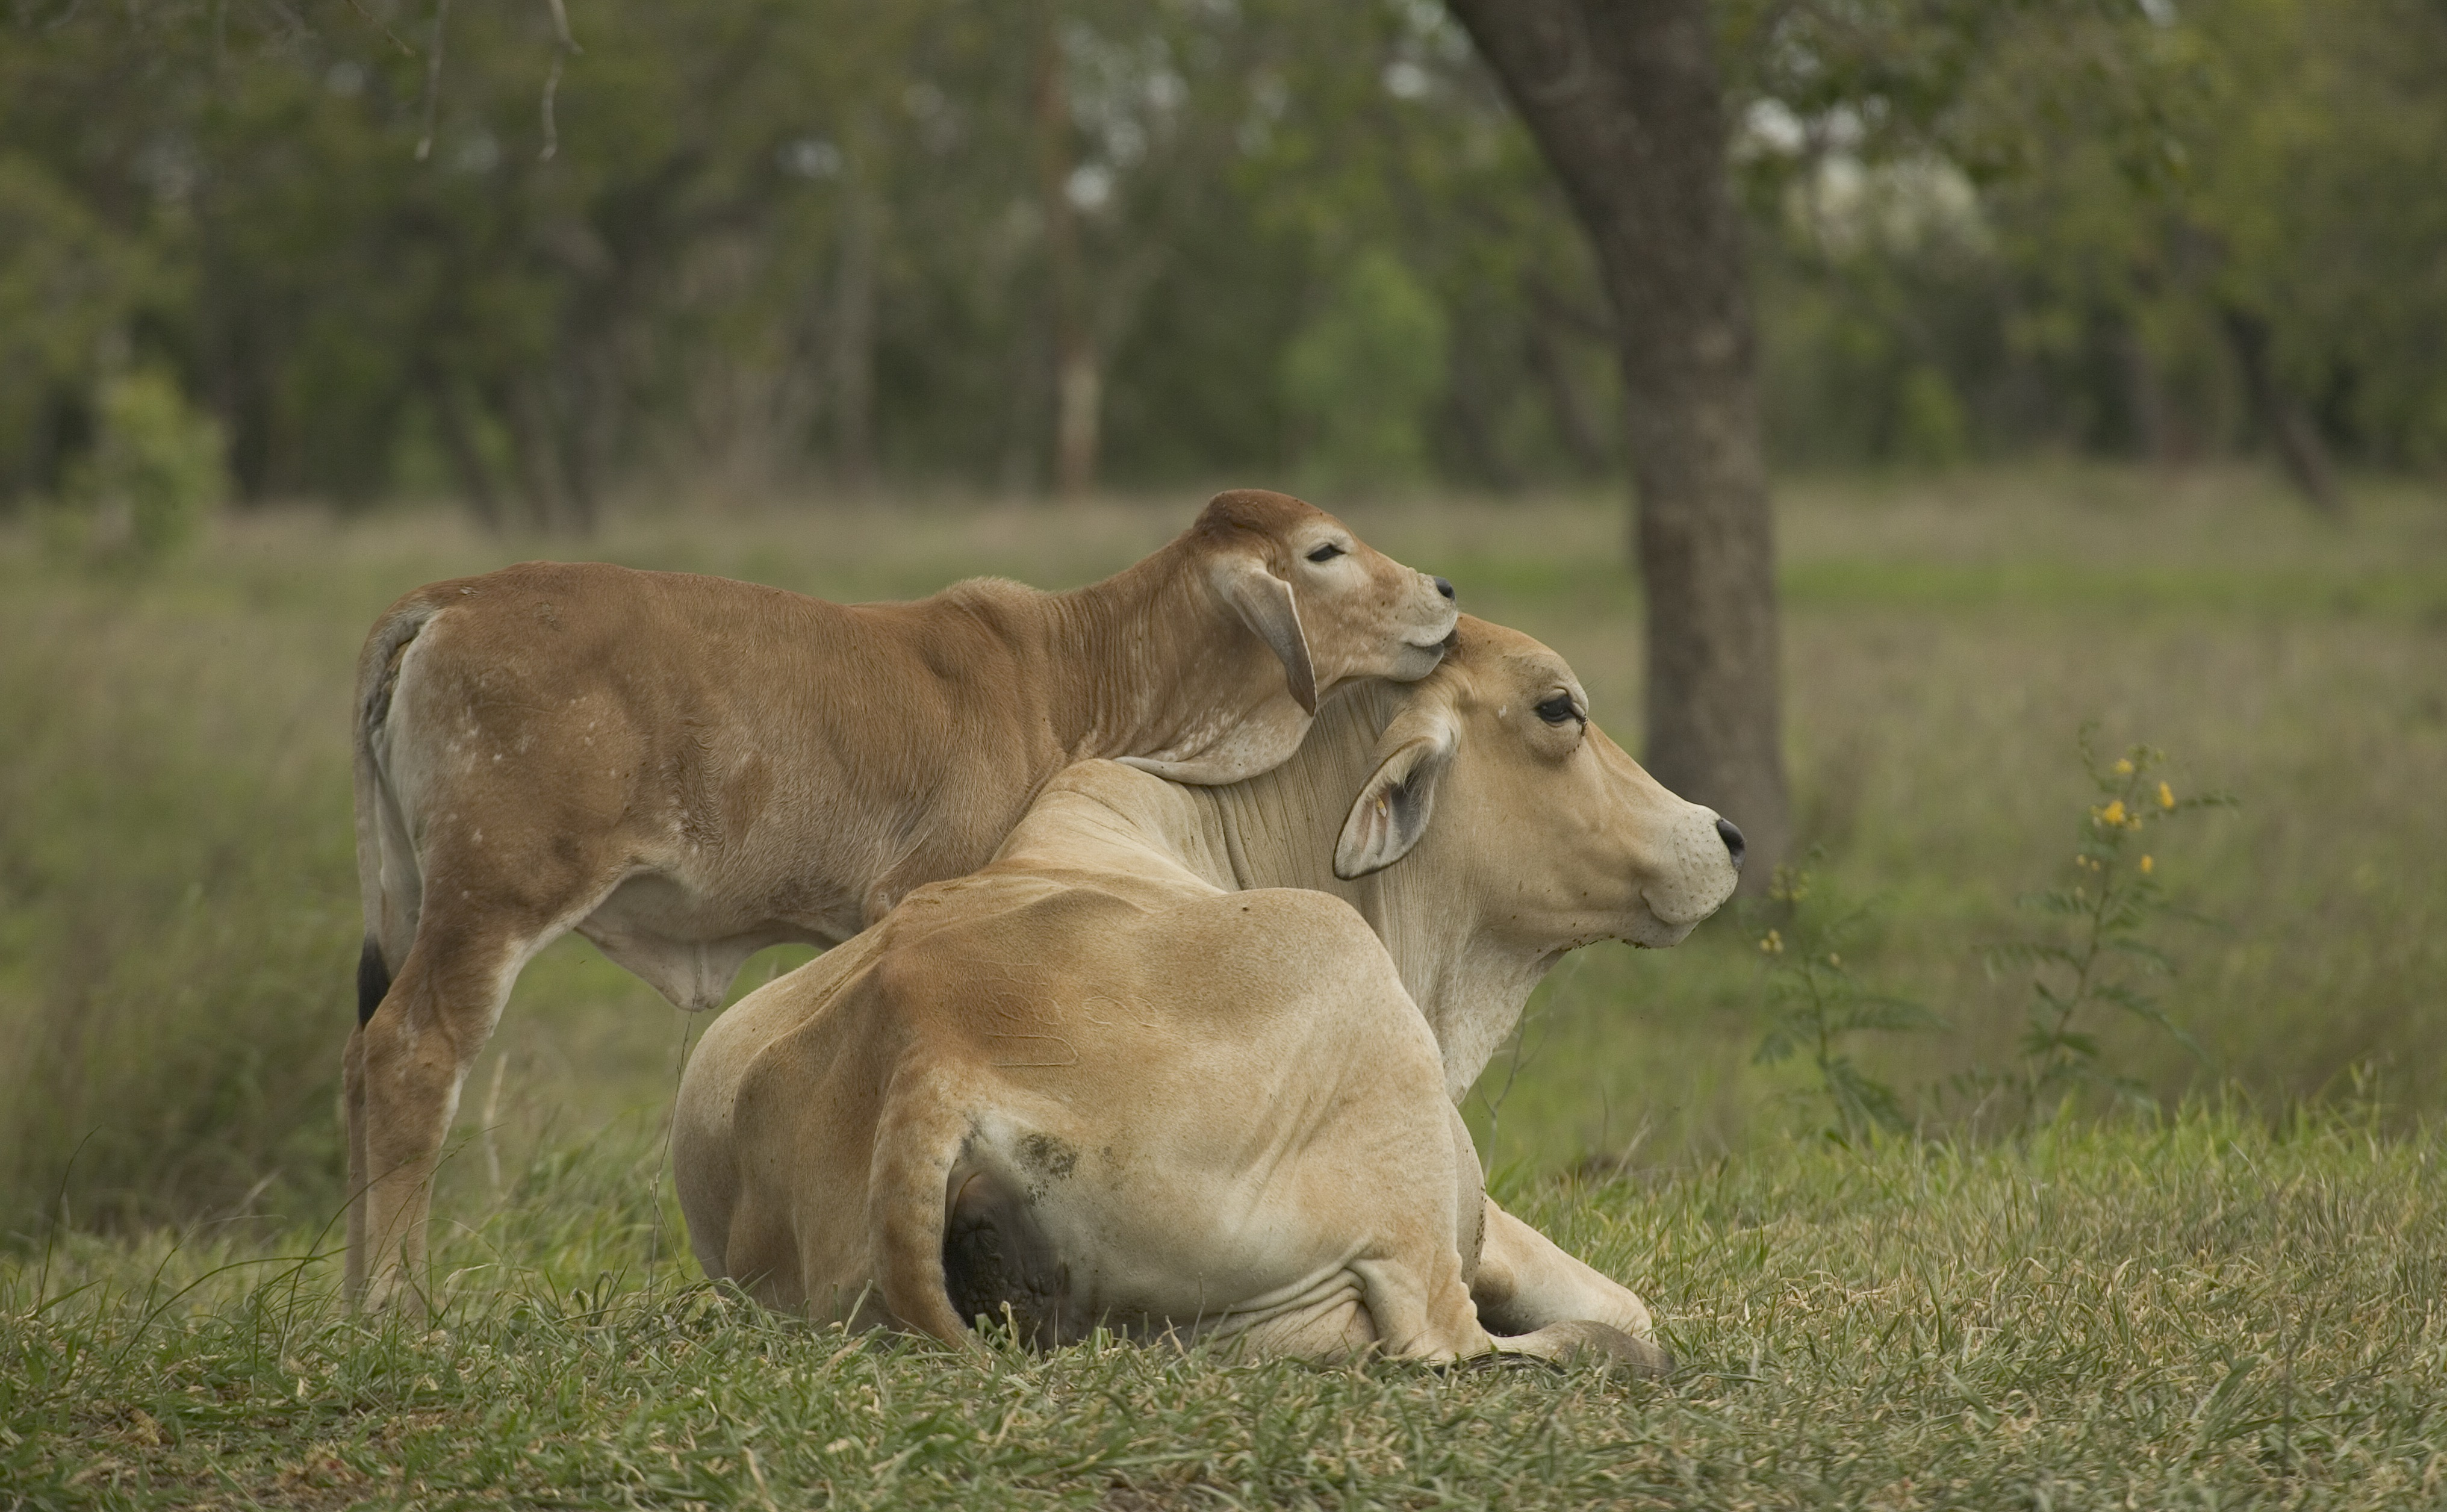 A baby jersey calf nuzzles its mother as she sits in a paddock.